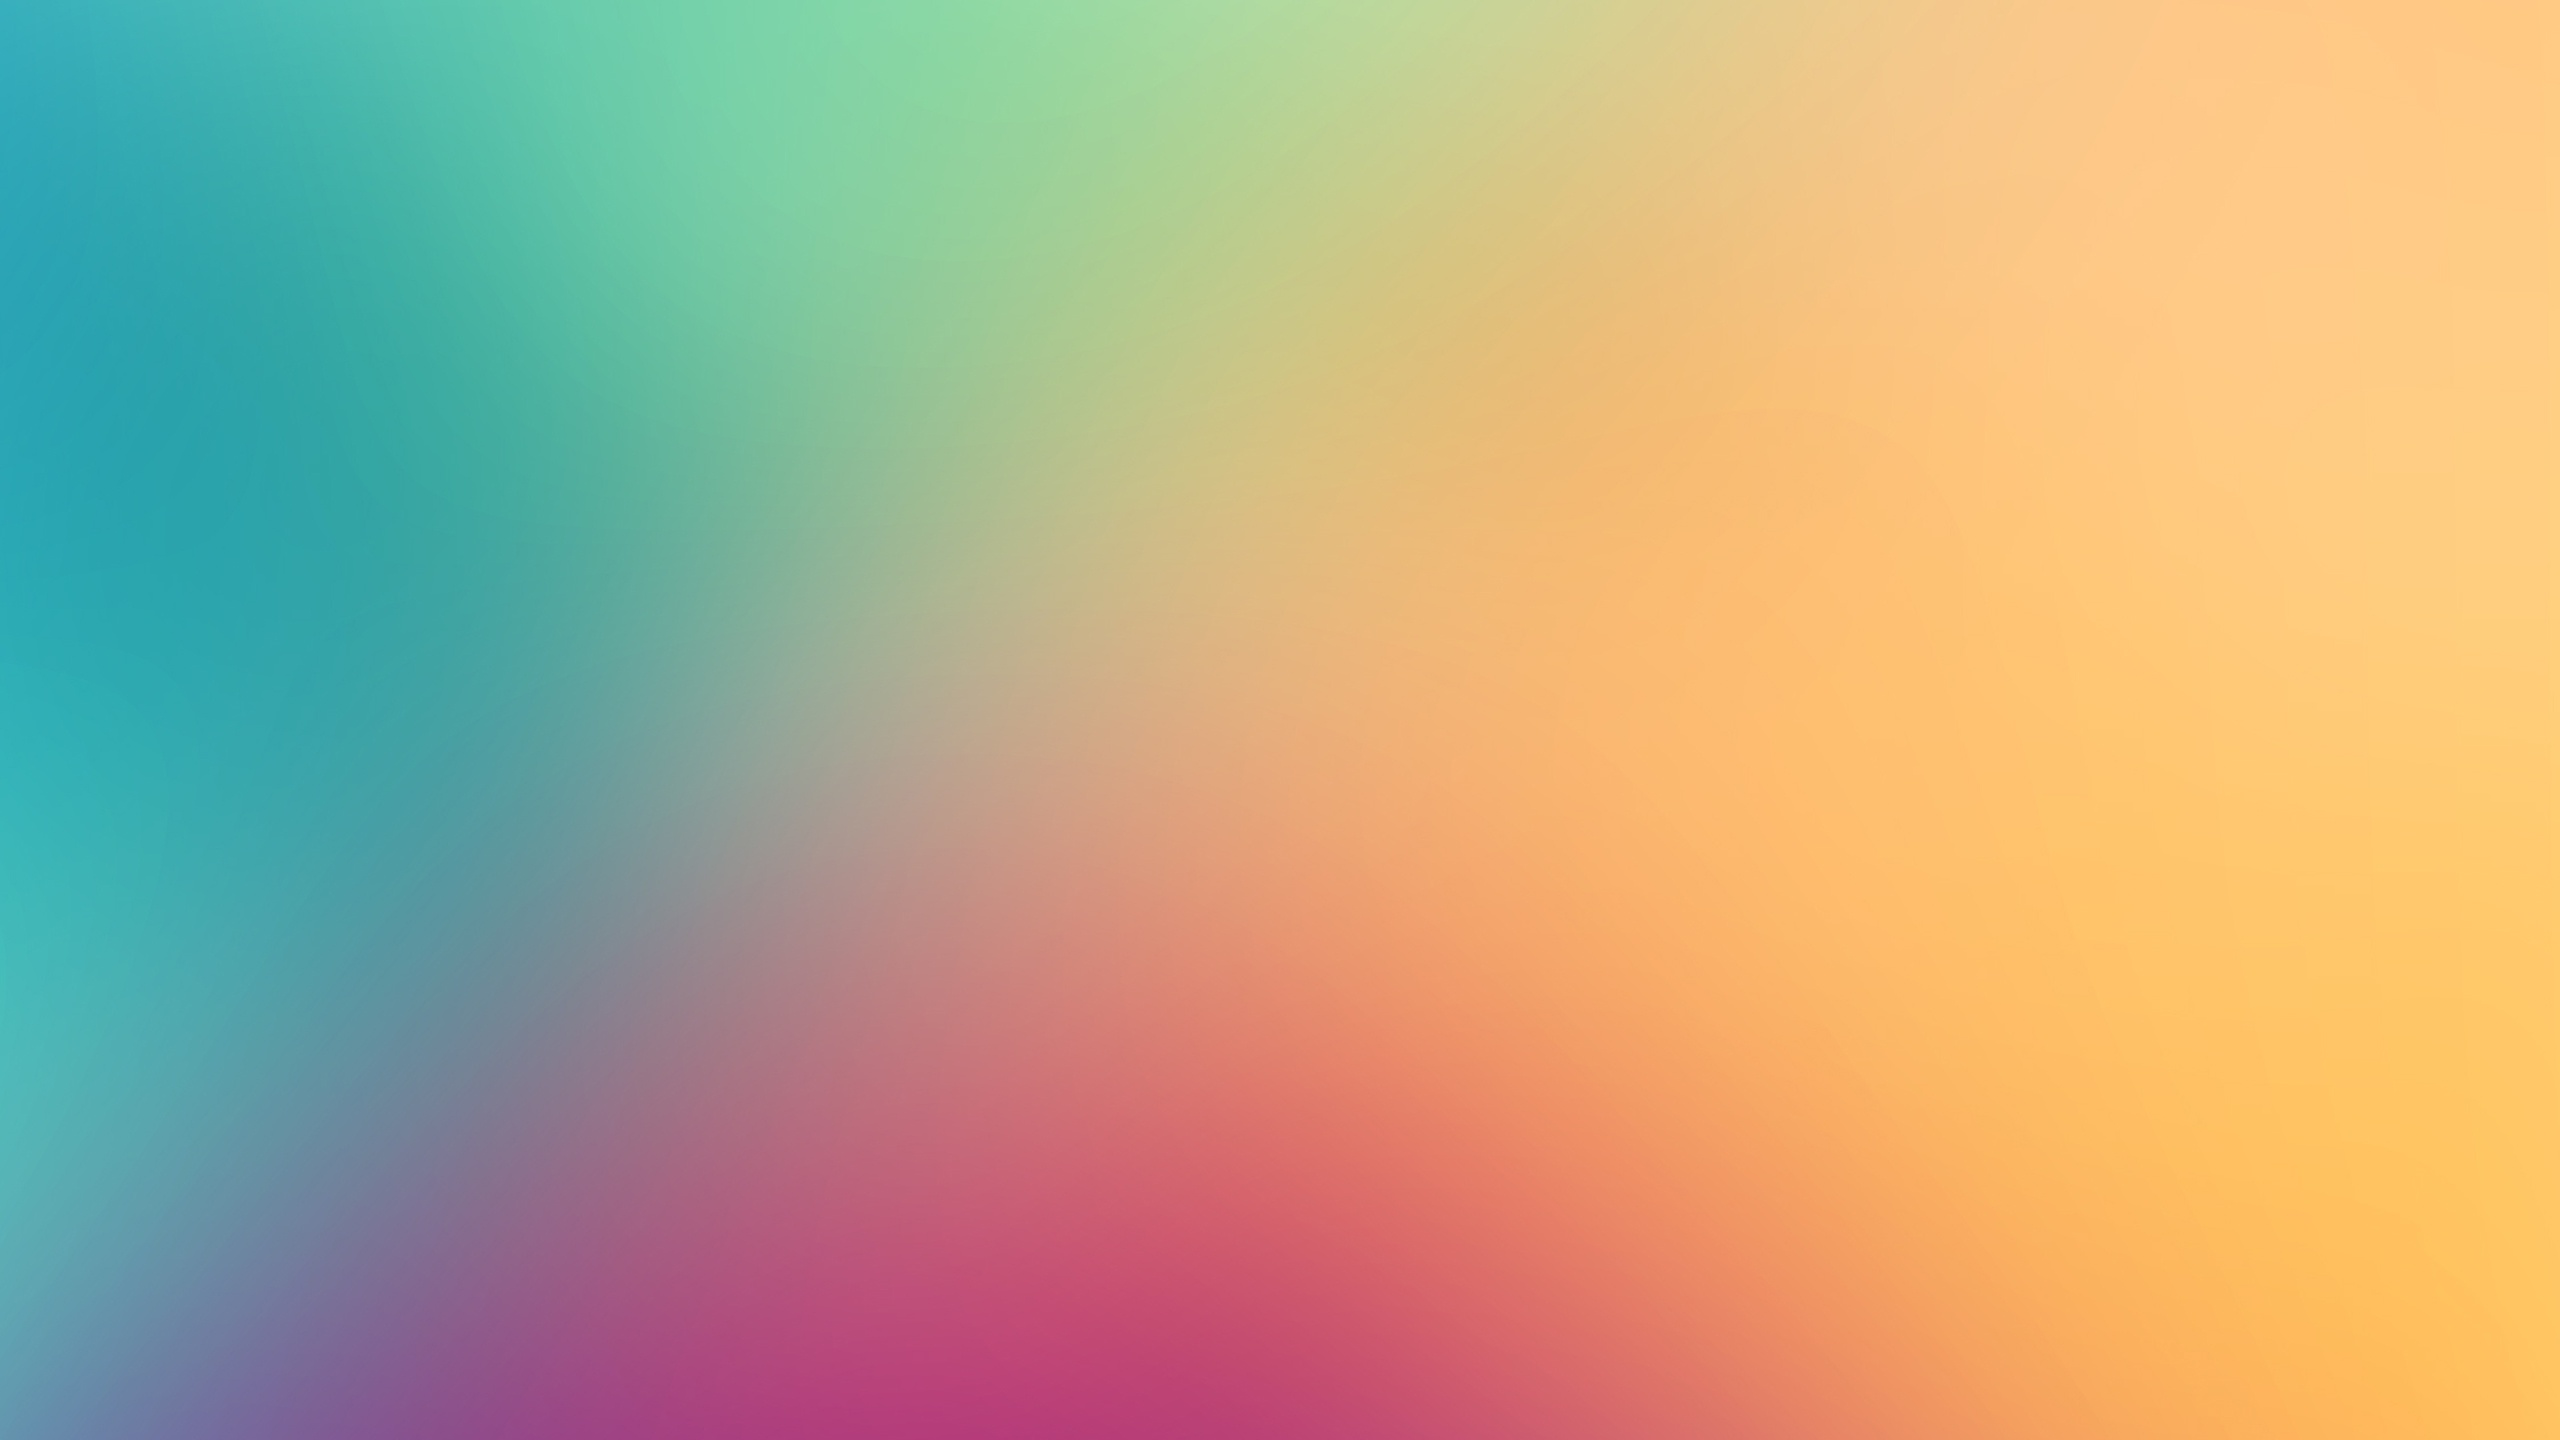 2560x1440 Gradient background Wallpaper